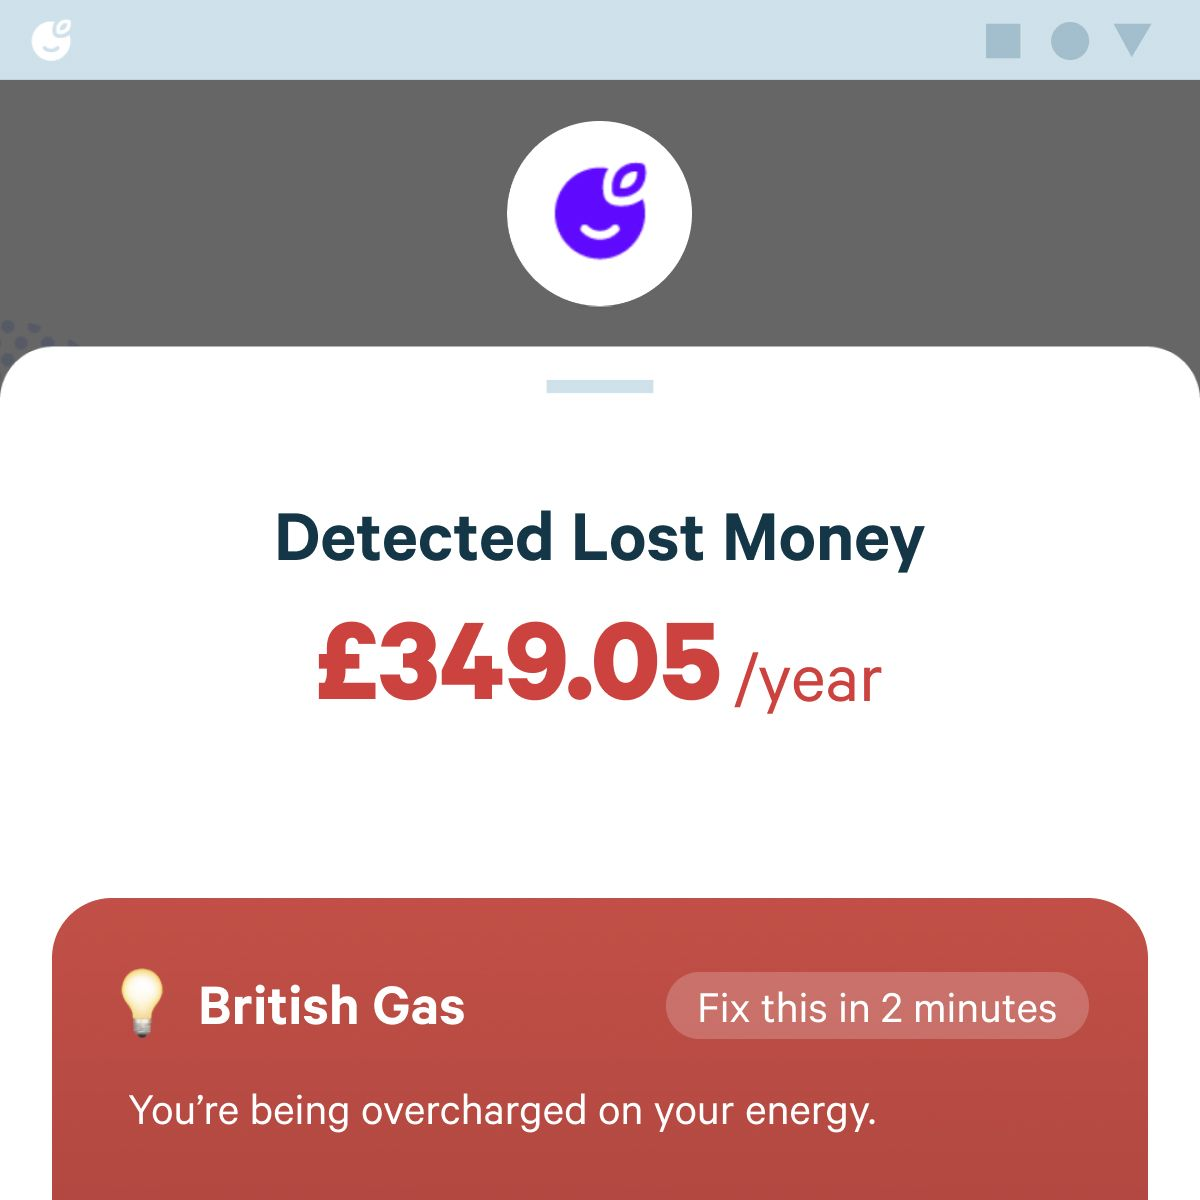 This free app can help you find better deals on your bills - here's how it works